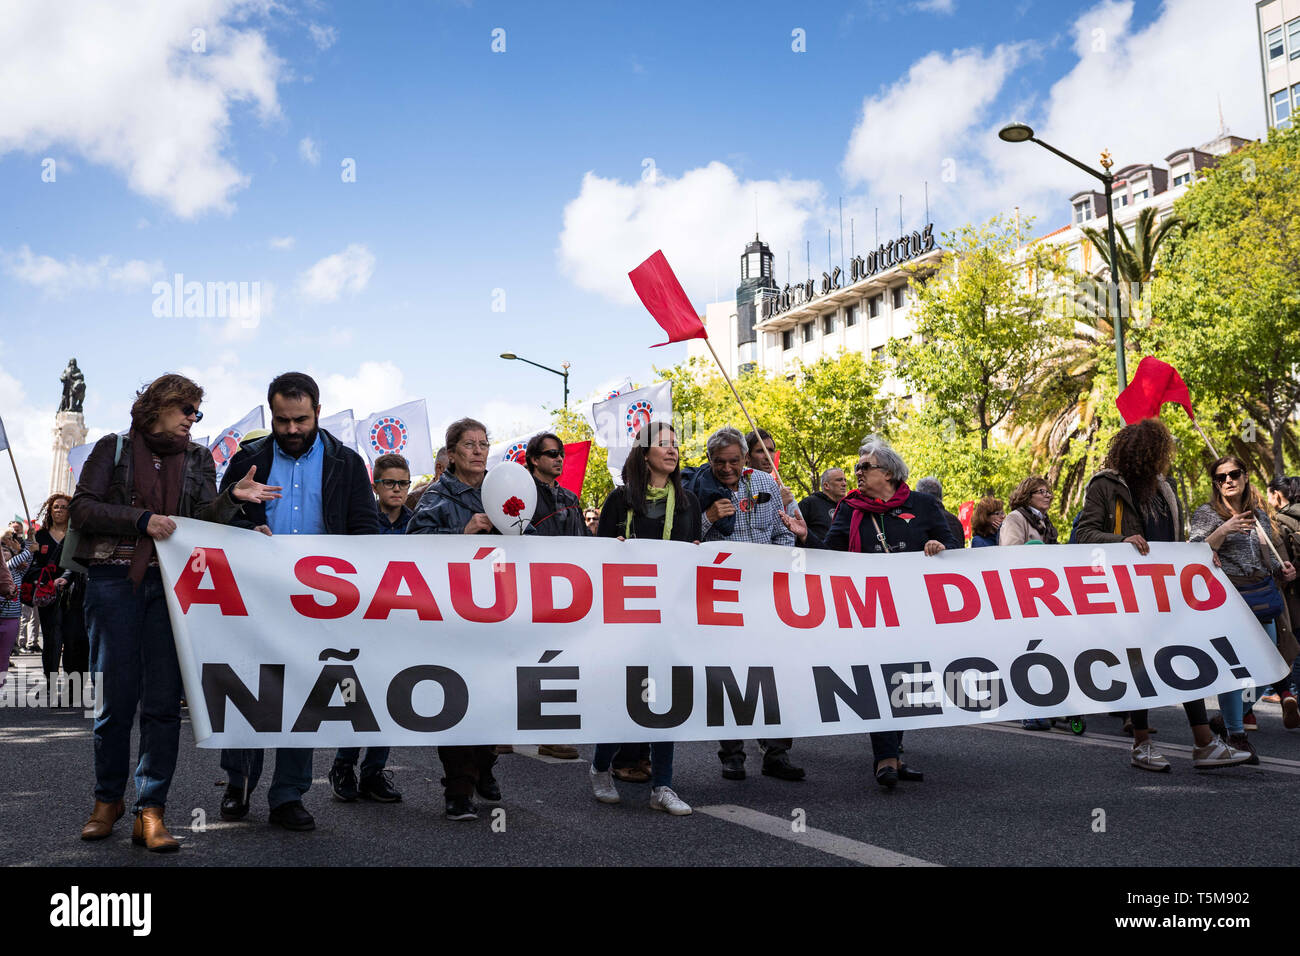 Lisbon, PORTUGAL, Portugal. 25th Apr, 2019. A poster says ''A saude e um direito, nao e um negocio'' - ''Health is a right, not a business.''.Thousands of people march in a parade to celebrate the 45th anniversary of the April 25 Revolution, also known as the Carnation Revolution, the Avenida da Liberdade in Lisbon. Credit: Henrique Casinhas/SOPA Images/ZUMA Wire/Alamy Live News - Stock Image